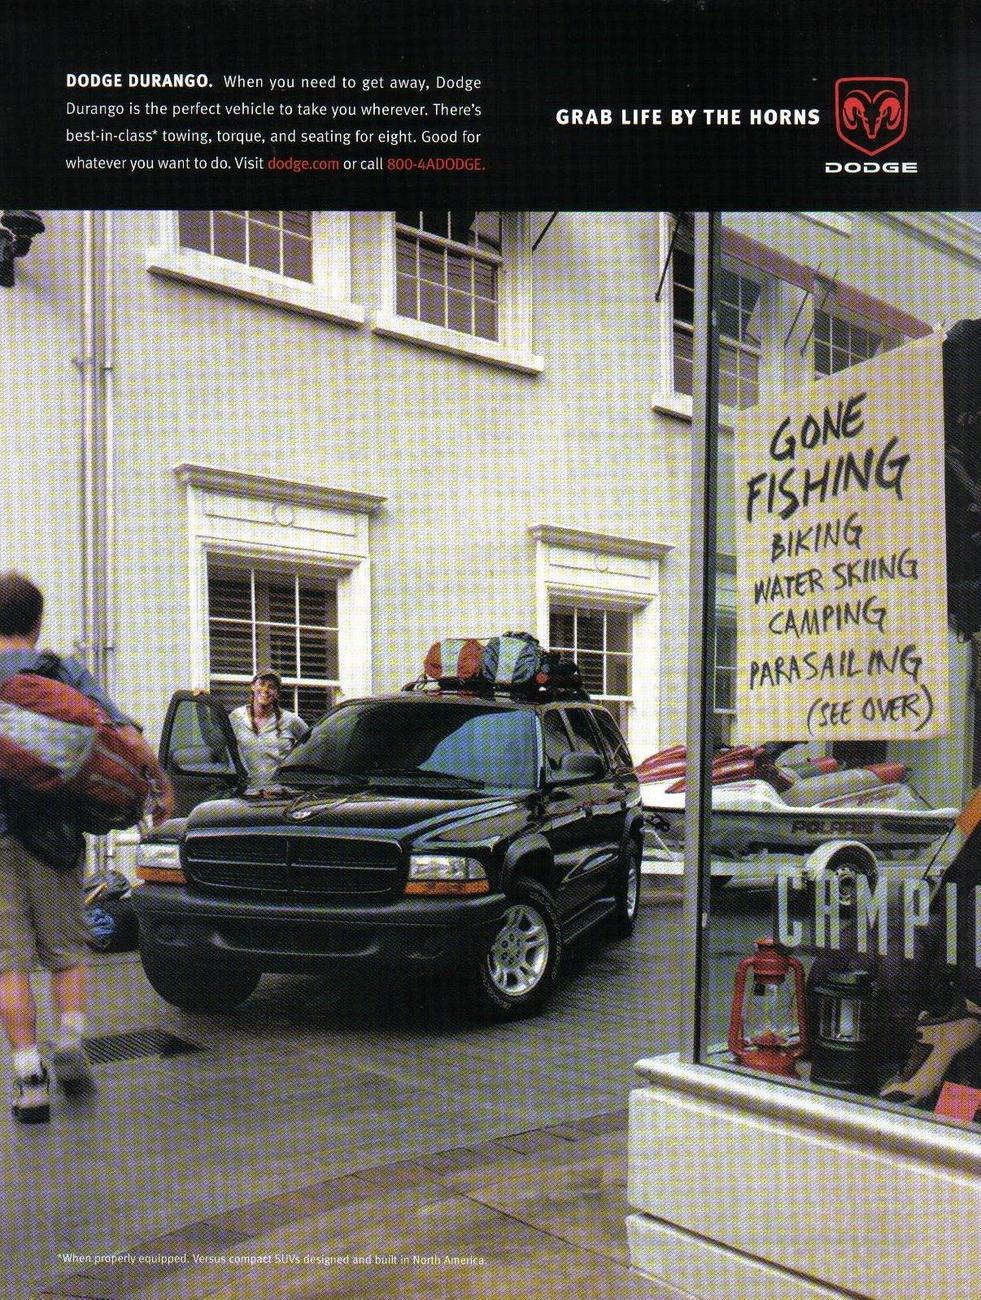 Primary image for Dodge Durango 2002 Full Page Color Print Ad Grab Life By The Horns Original NM